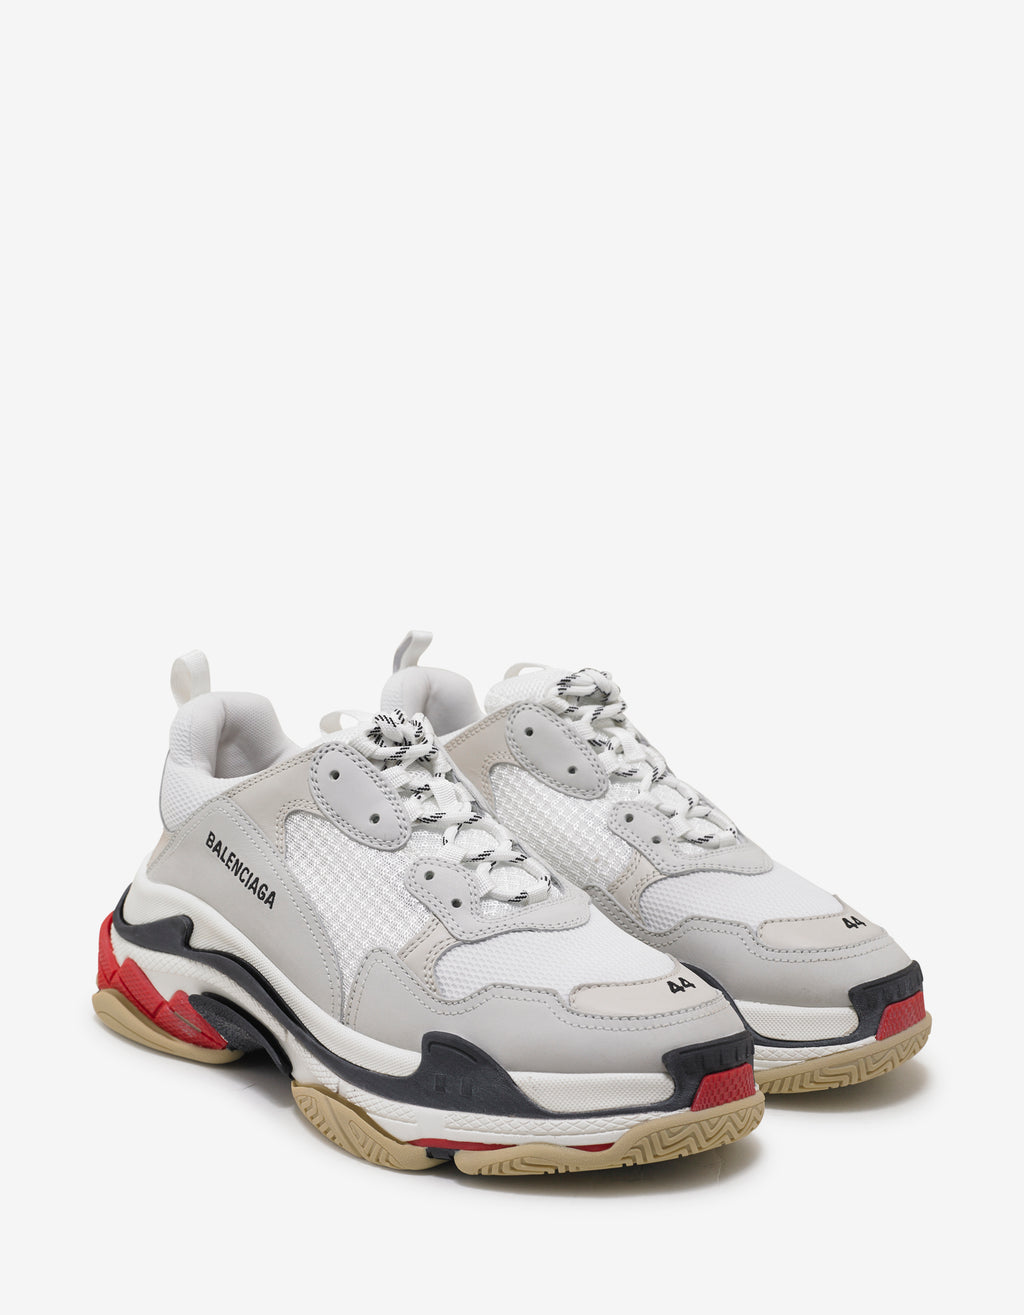 Triple S White, Red & Black Trainers